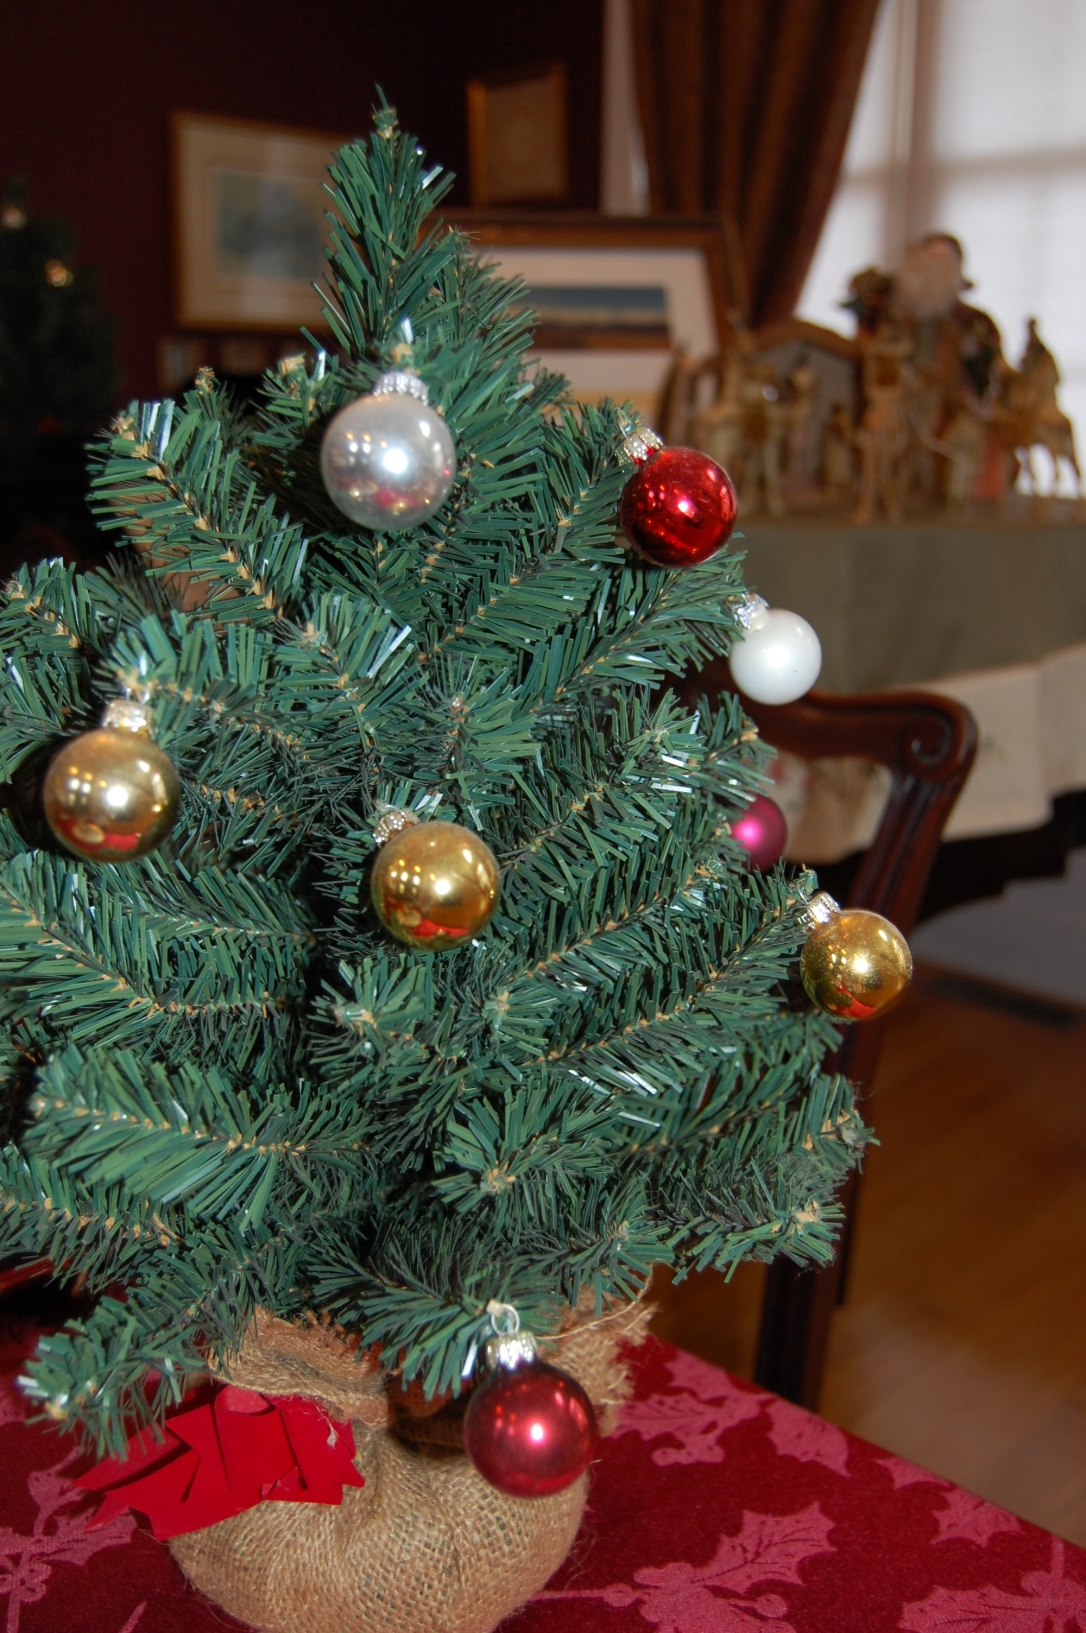 Decorating with Leftover Ornaments | www.classictasselsandmore.com